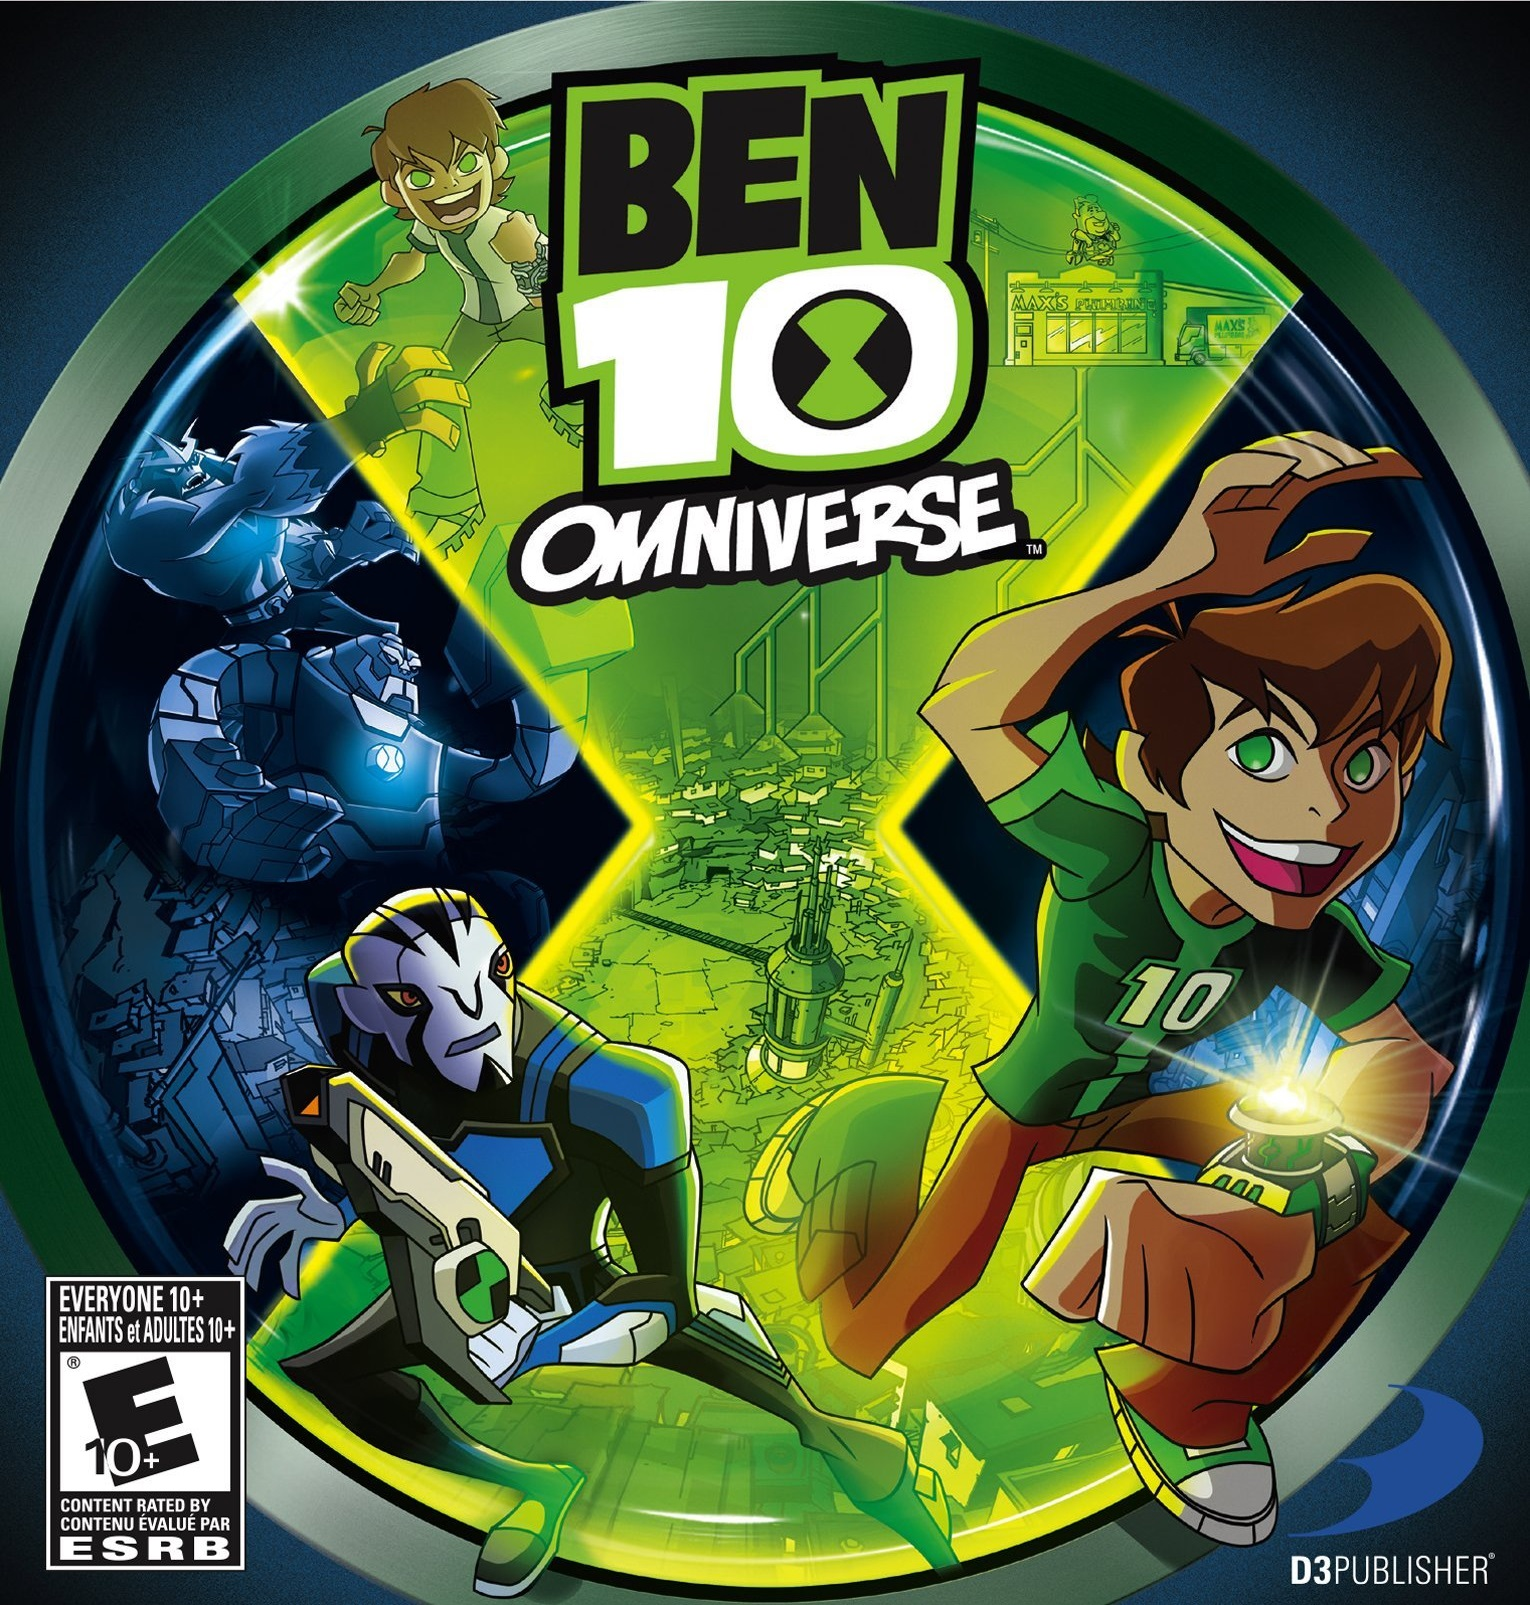 ben 10 omniverse full episode in hindi download